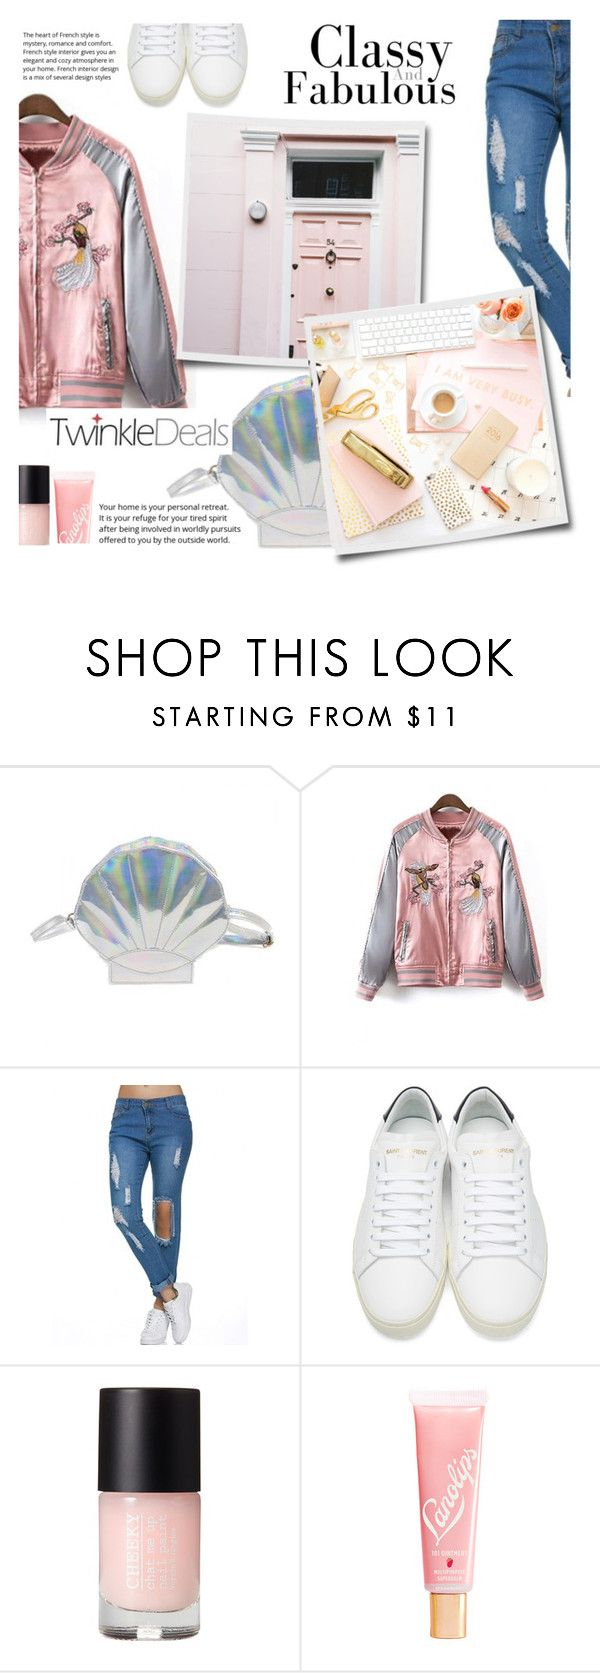 """""""Twinkle Deals"""" by pankh ❤ liked on Polyvore featuring Yves Saint Laurent, Lano, modern, chic, sporty, Different and freedom"""